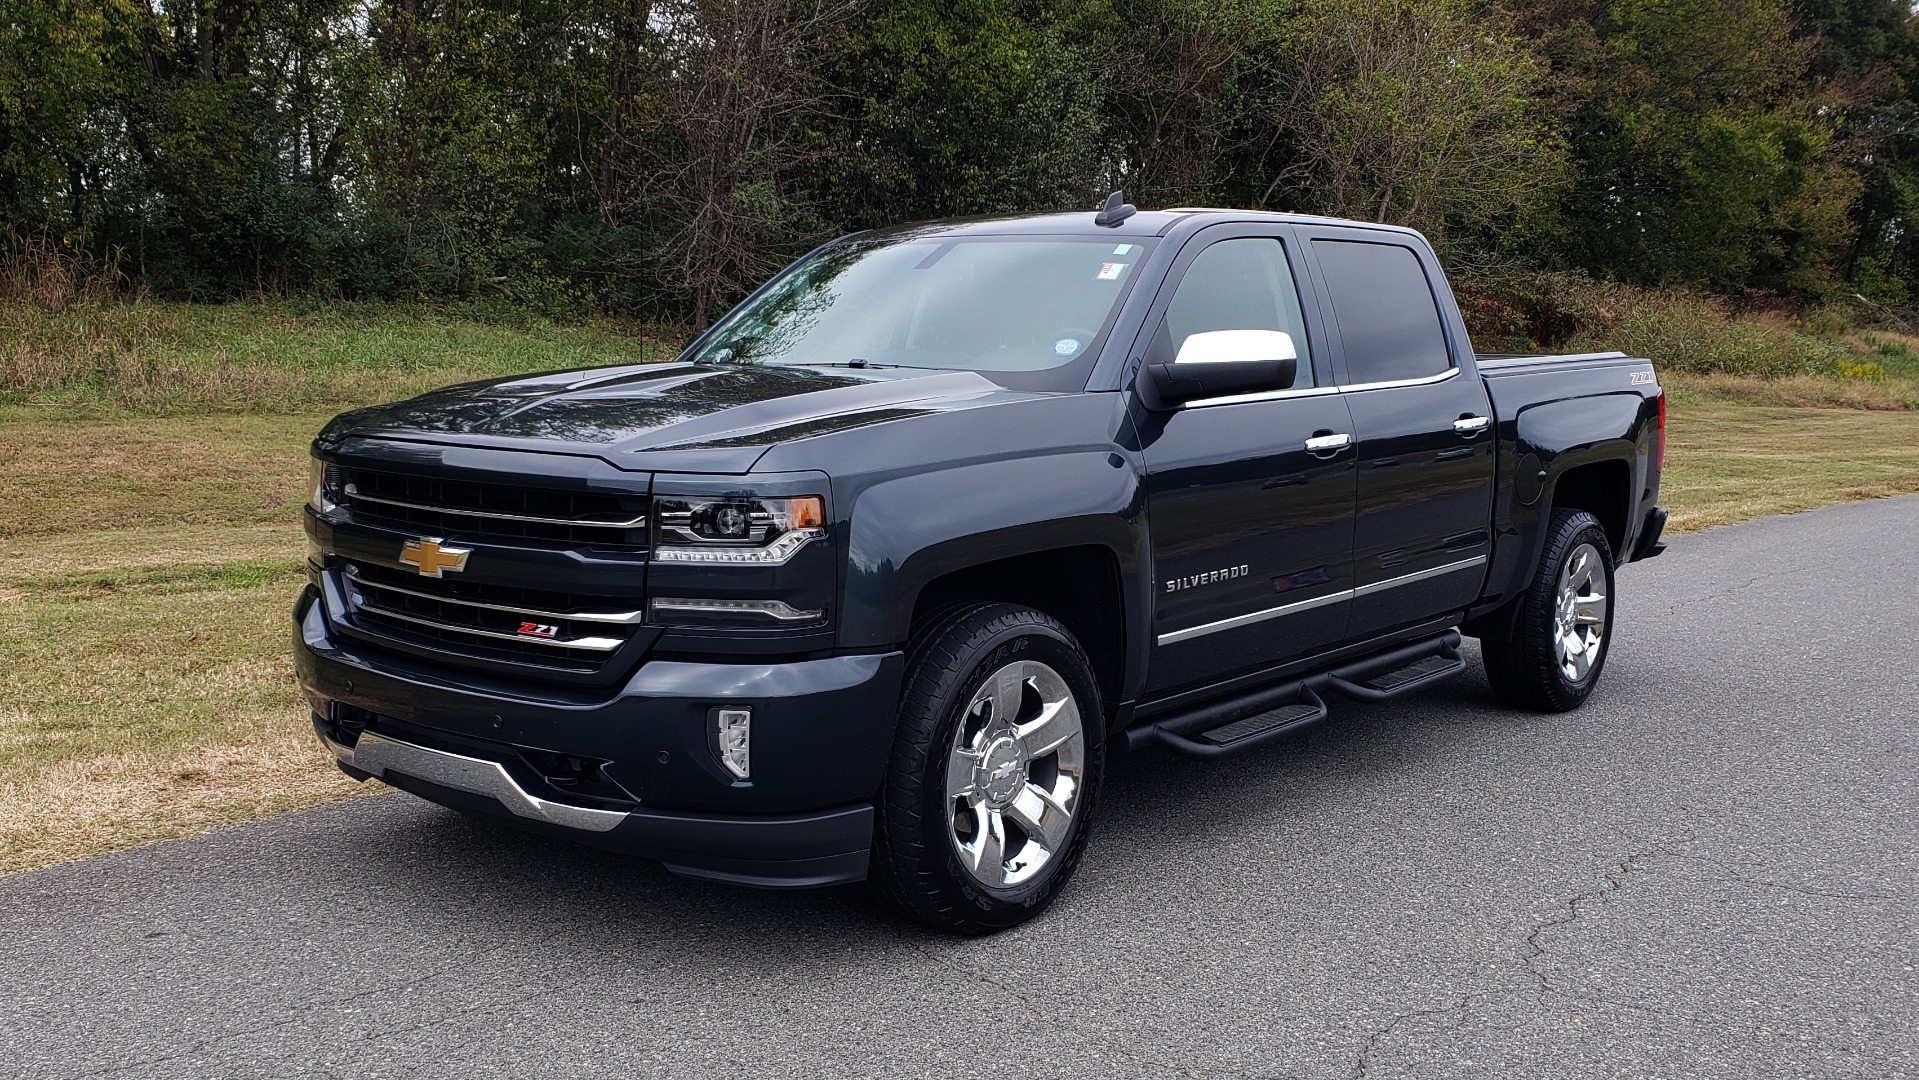 Used 2017 Chevrolet SILVERADO 1500 LTZ 4WD / NAV / BOSE / LEATHER / CAMERA / LOADED for sale Sold at Formula Imports in Charlotte NC 28227 1